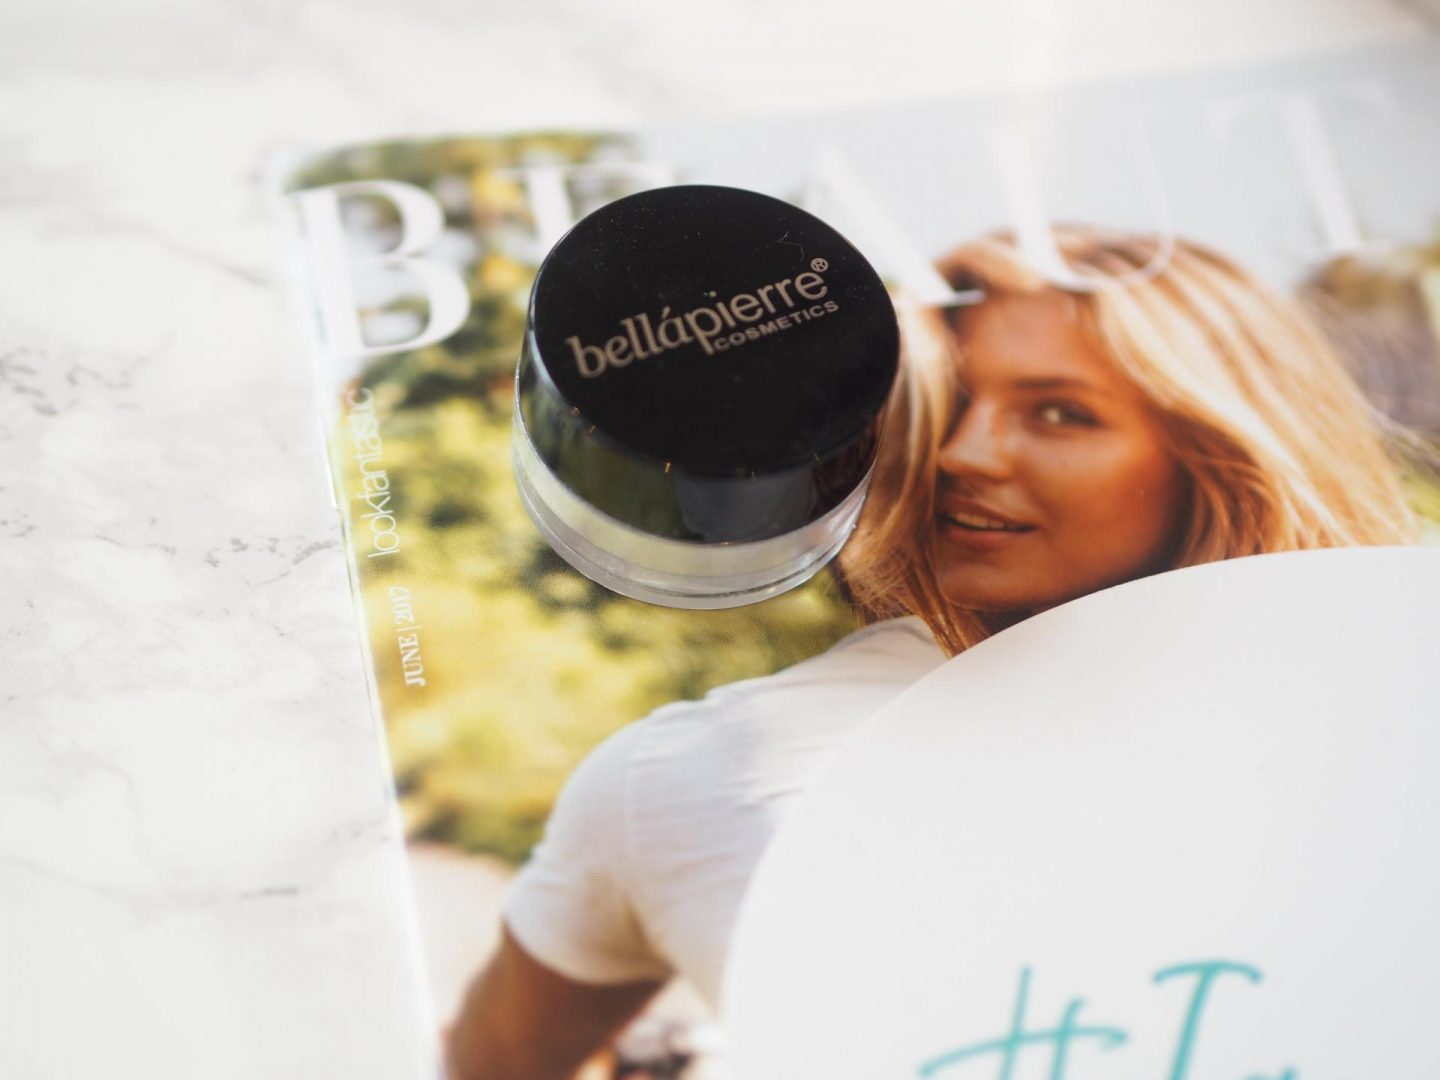 Lookfantastic Wanderlust Beauty Box - Product: Bellapierre Shimmer Highlighter